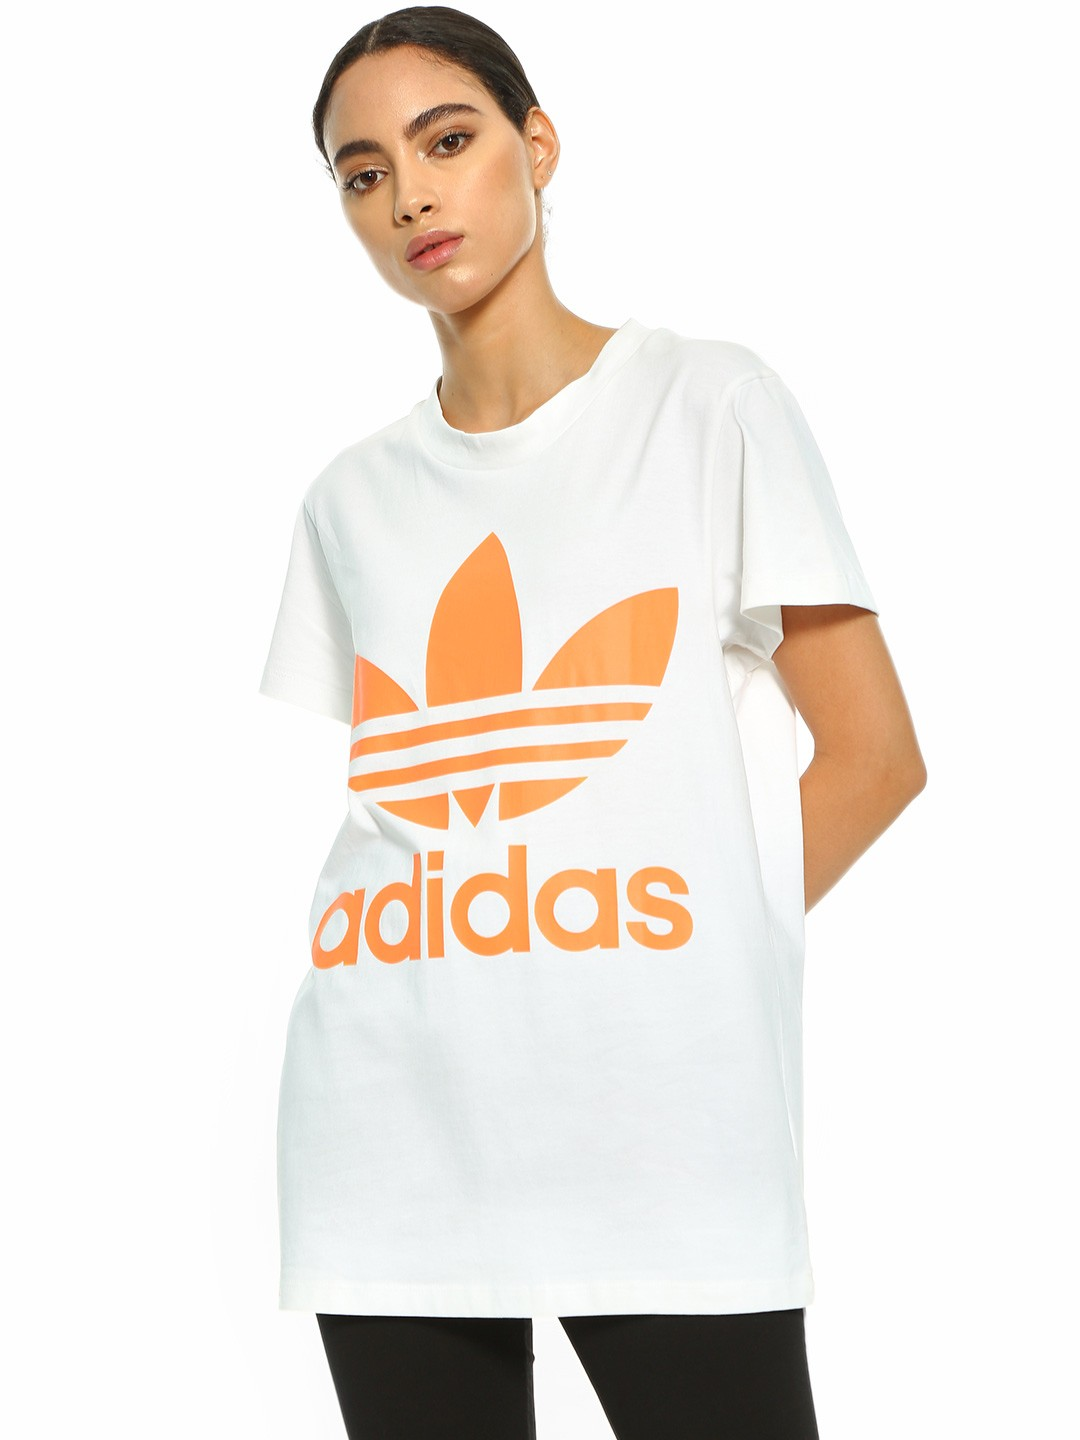 Adidas Originals White Oversized Trefoil T-Shirt 1